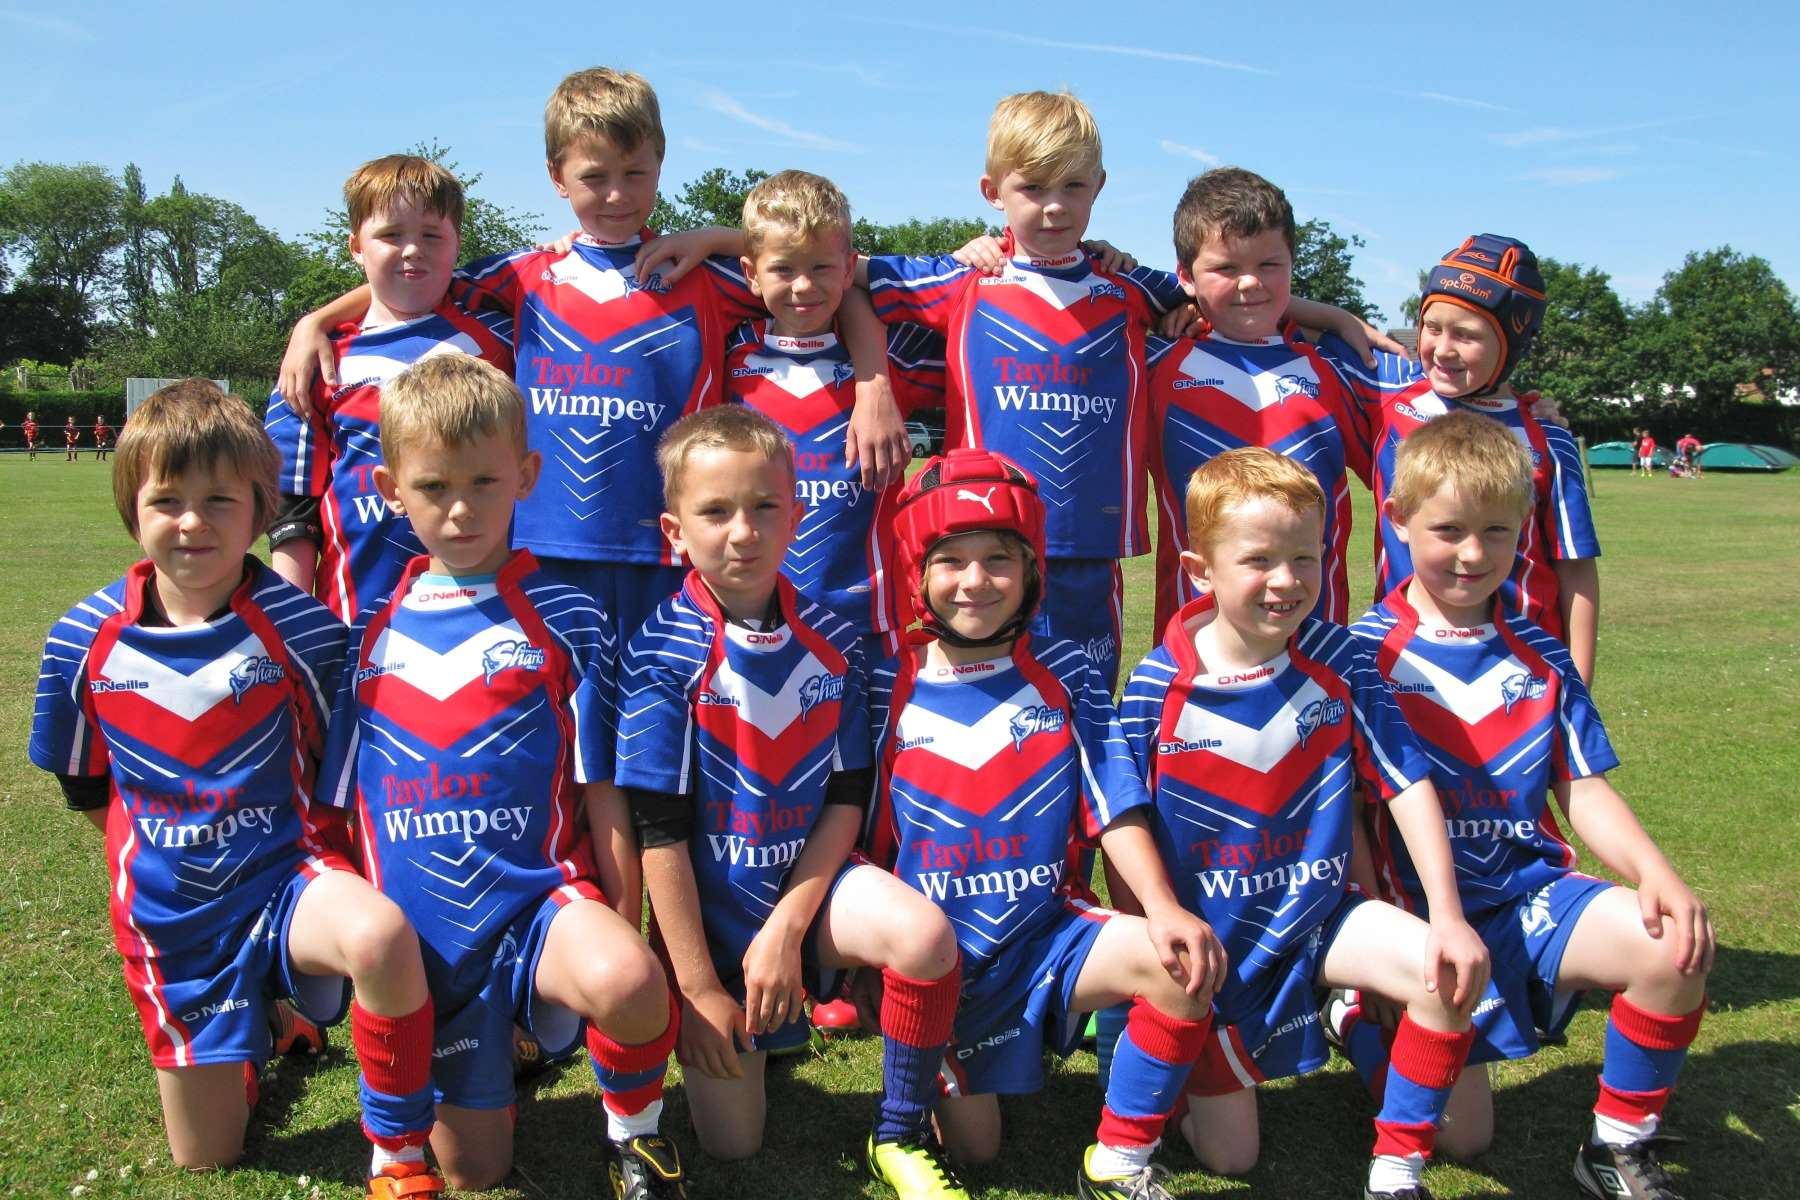 Shevington Sharks Under 8 Team Sponsorship